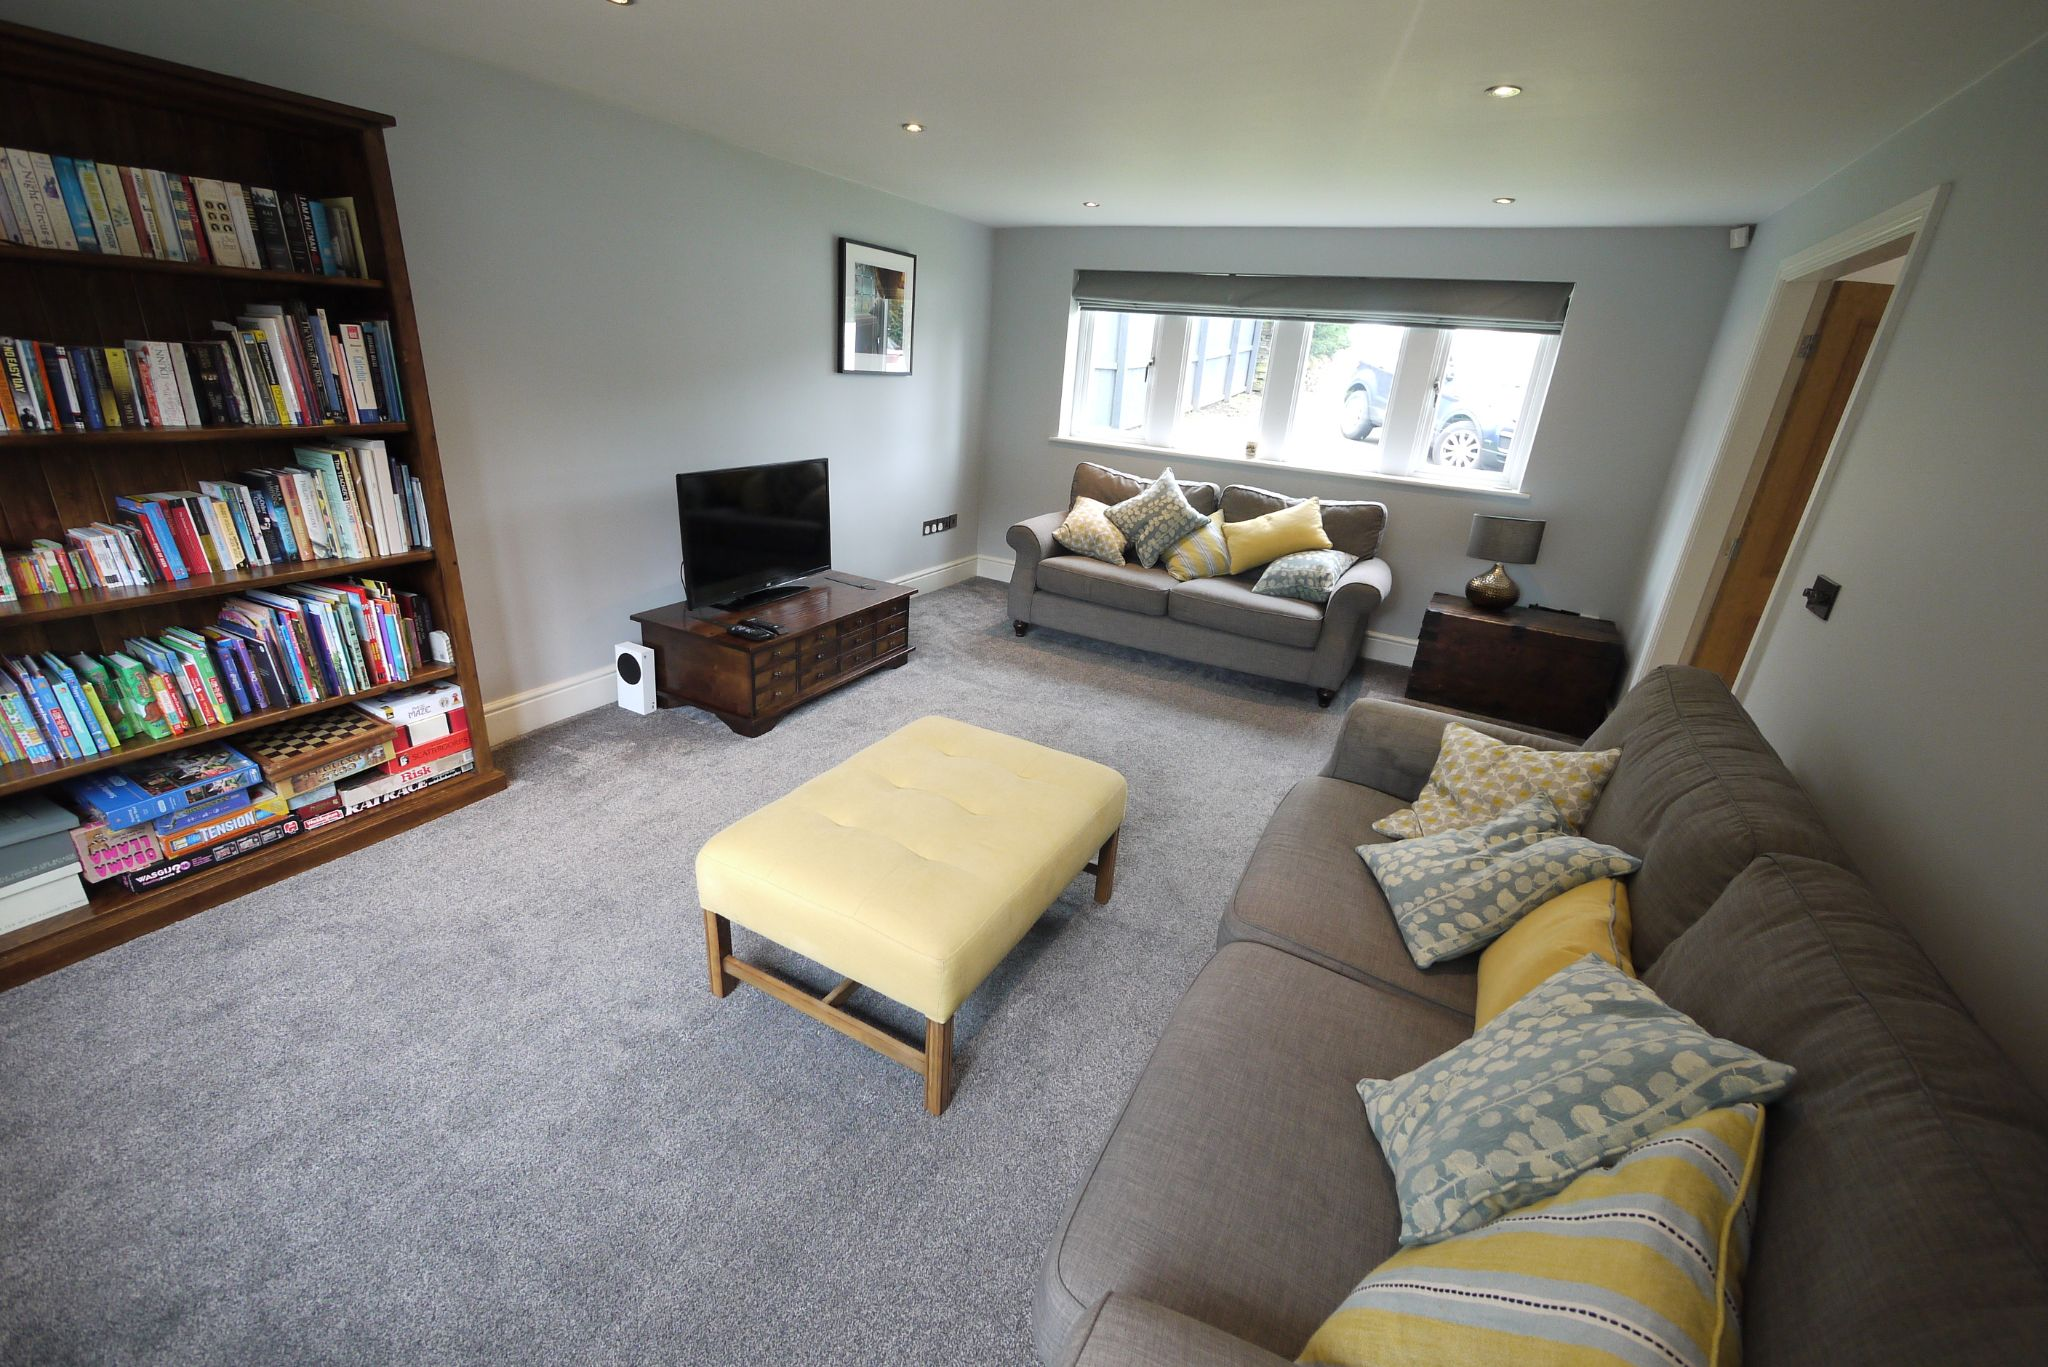 4 bedroom detached house For Sale in Brighouse - Photograph 4.